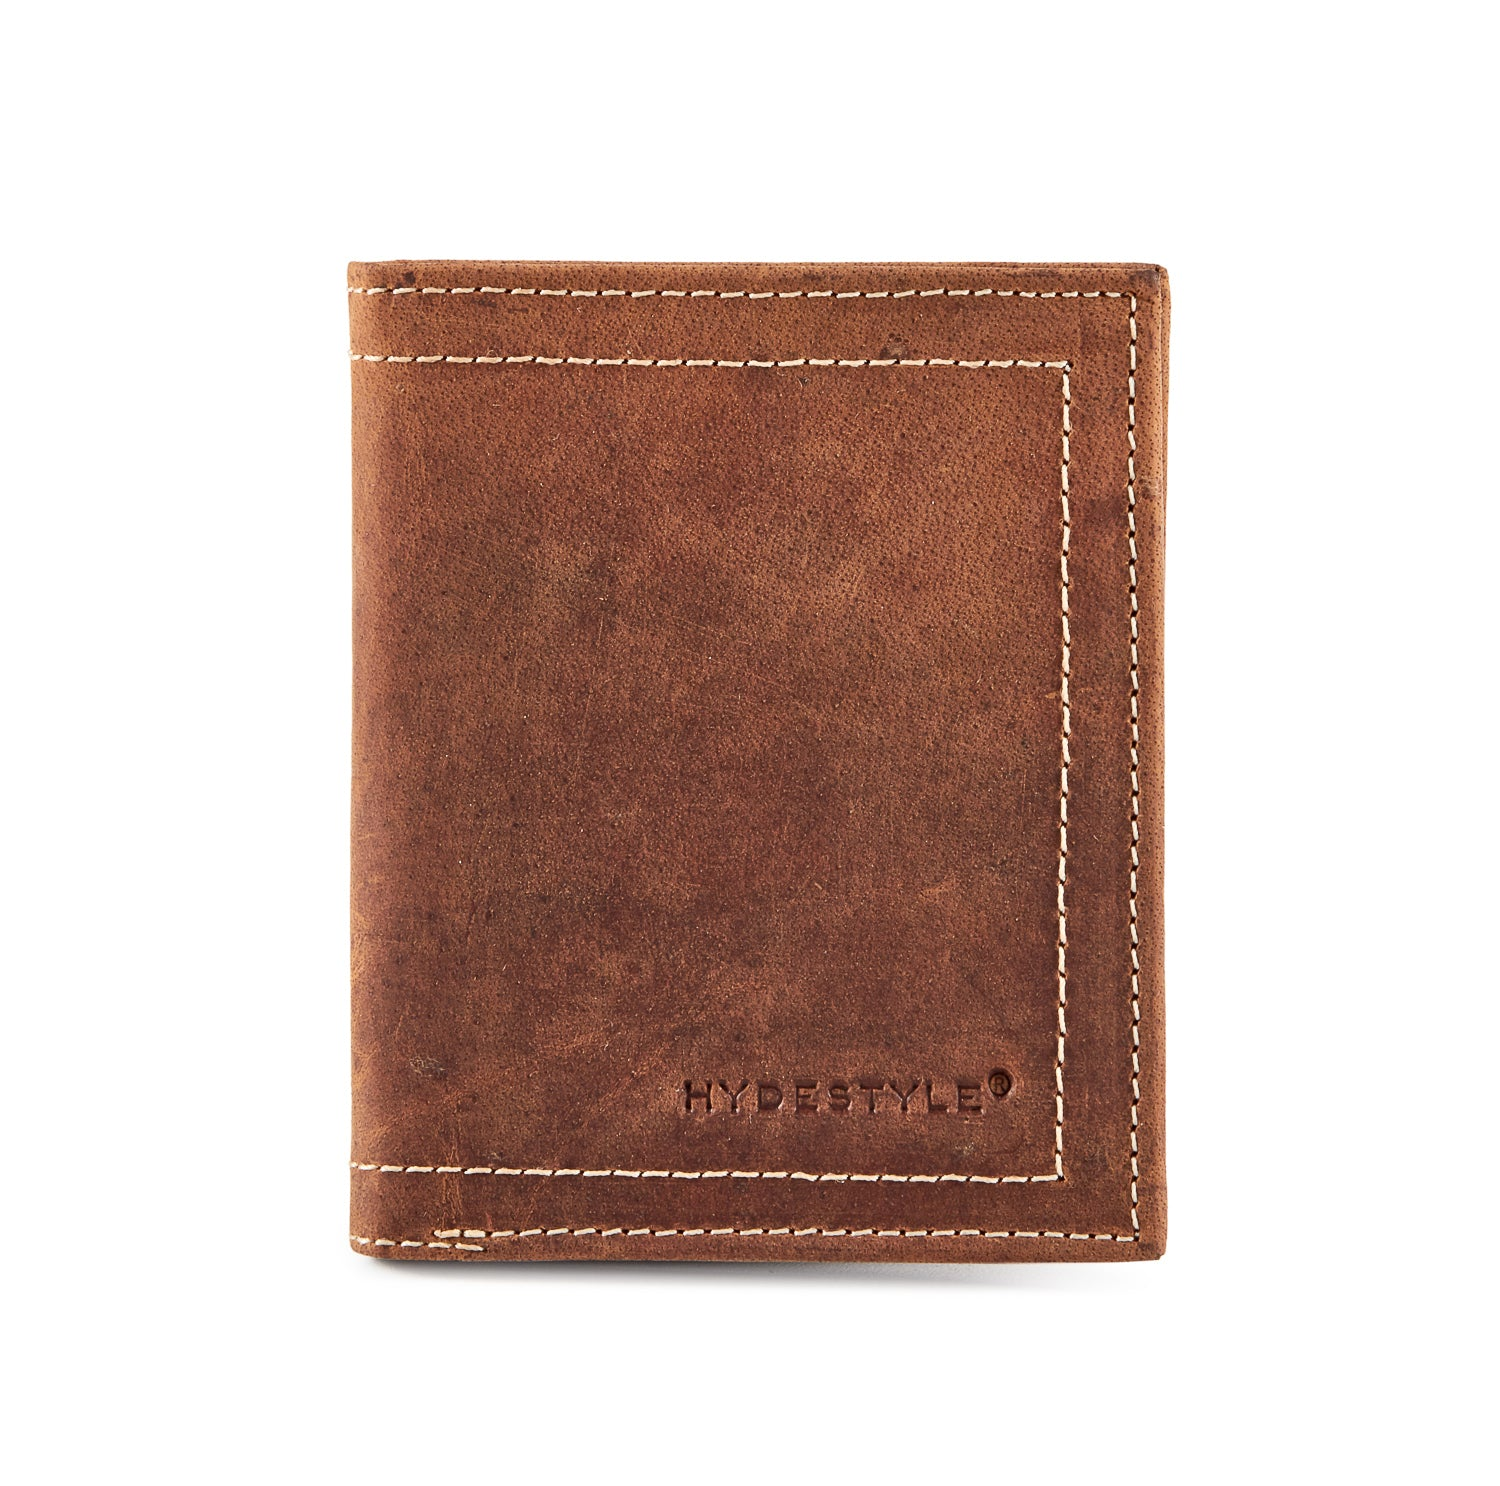 Distressed leather men's bi-fold coin wallet #GW704